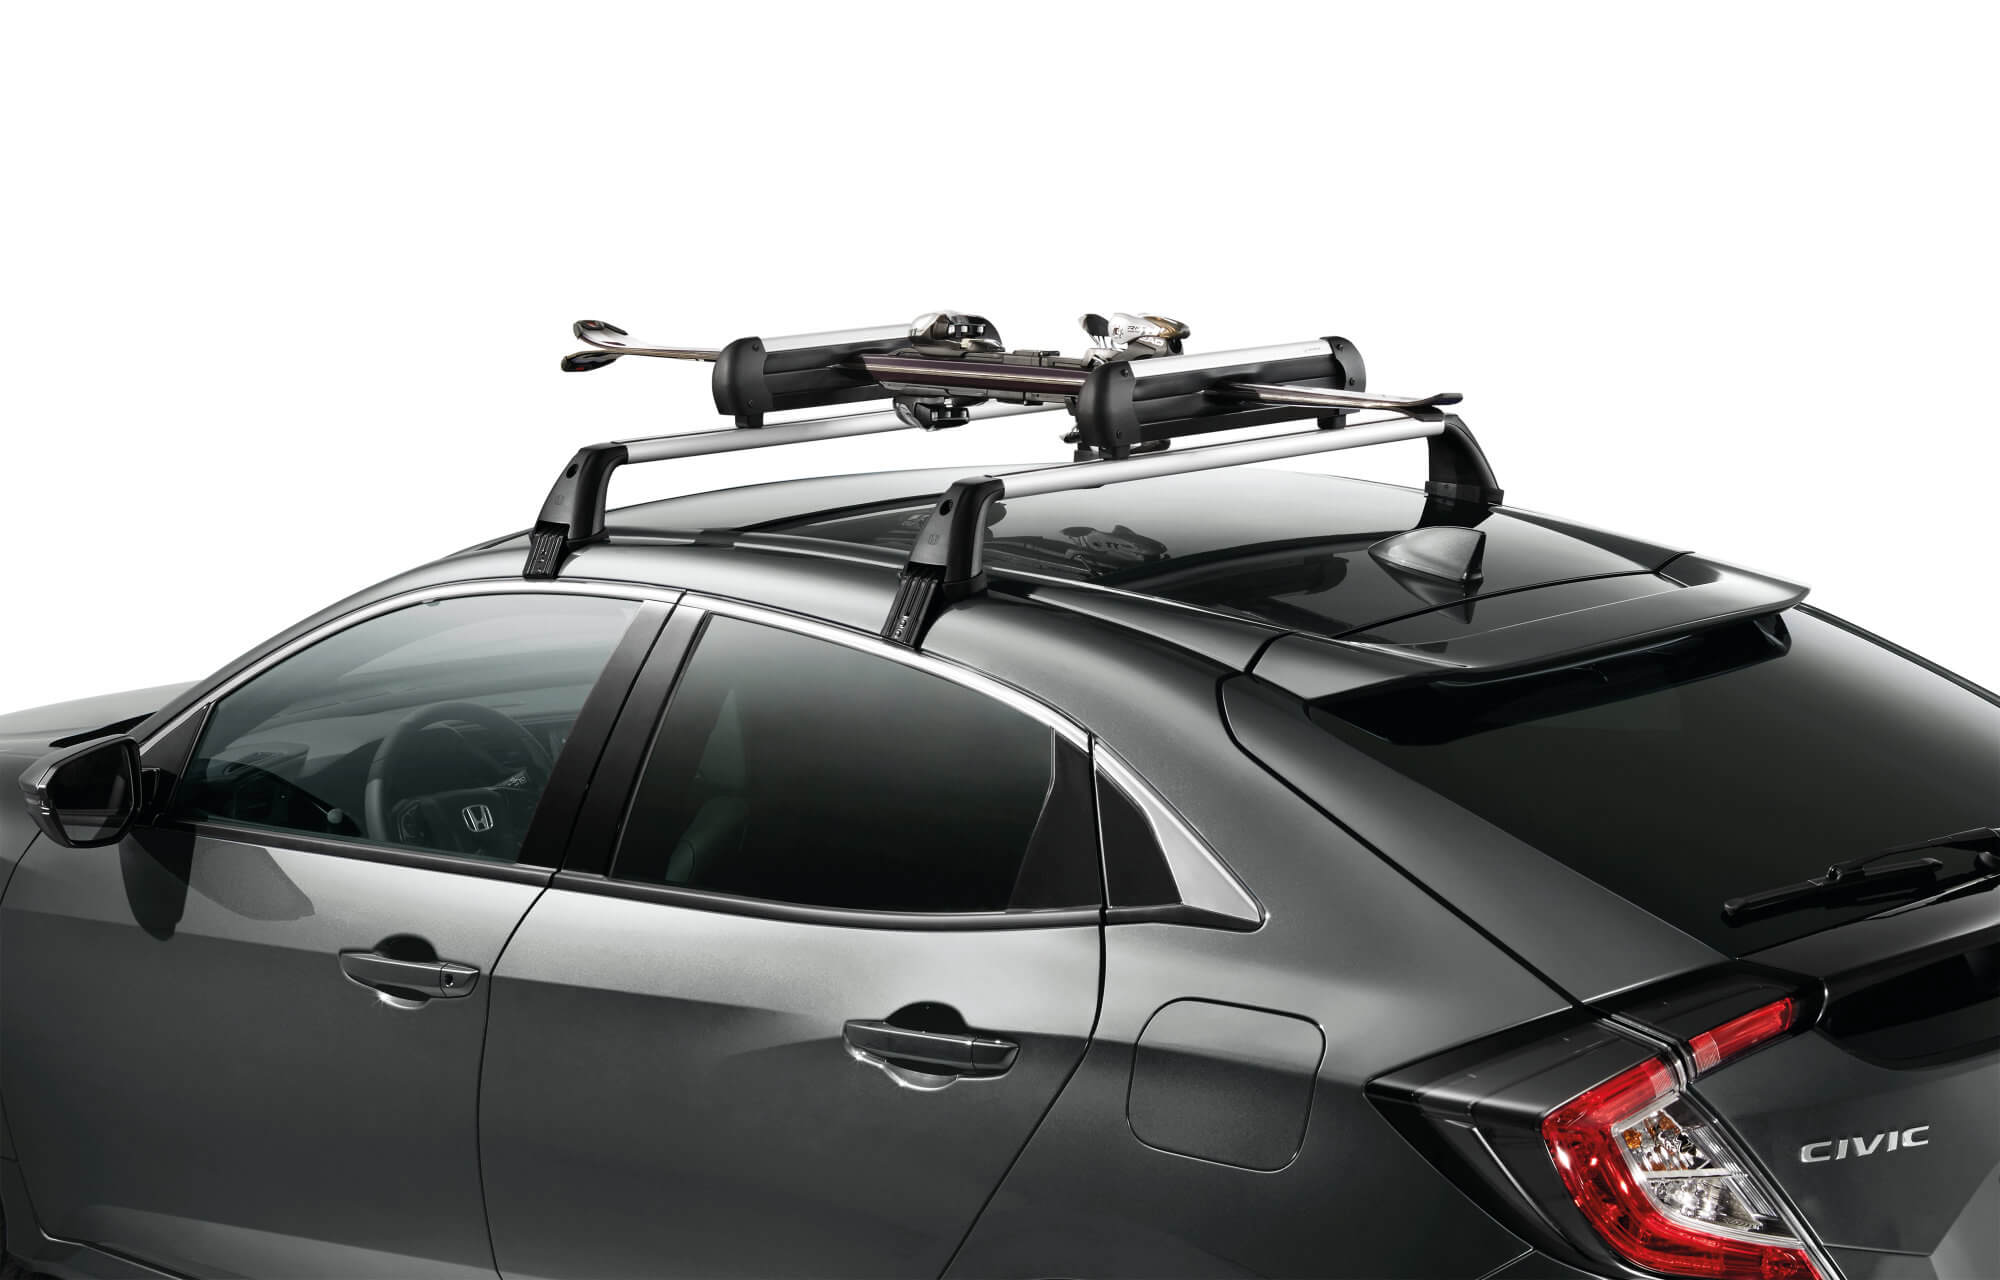 Honda Civic 5 Door Ski & Snowboard Attachment